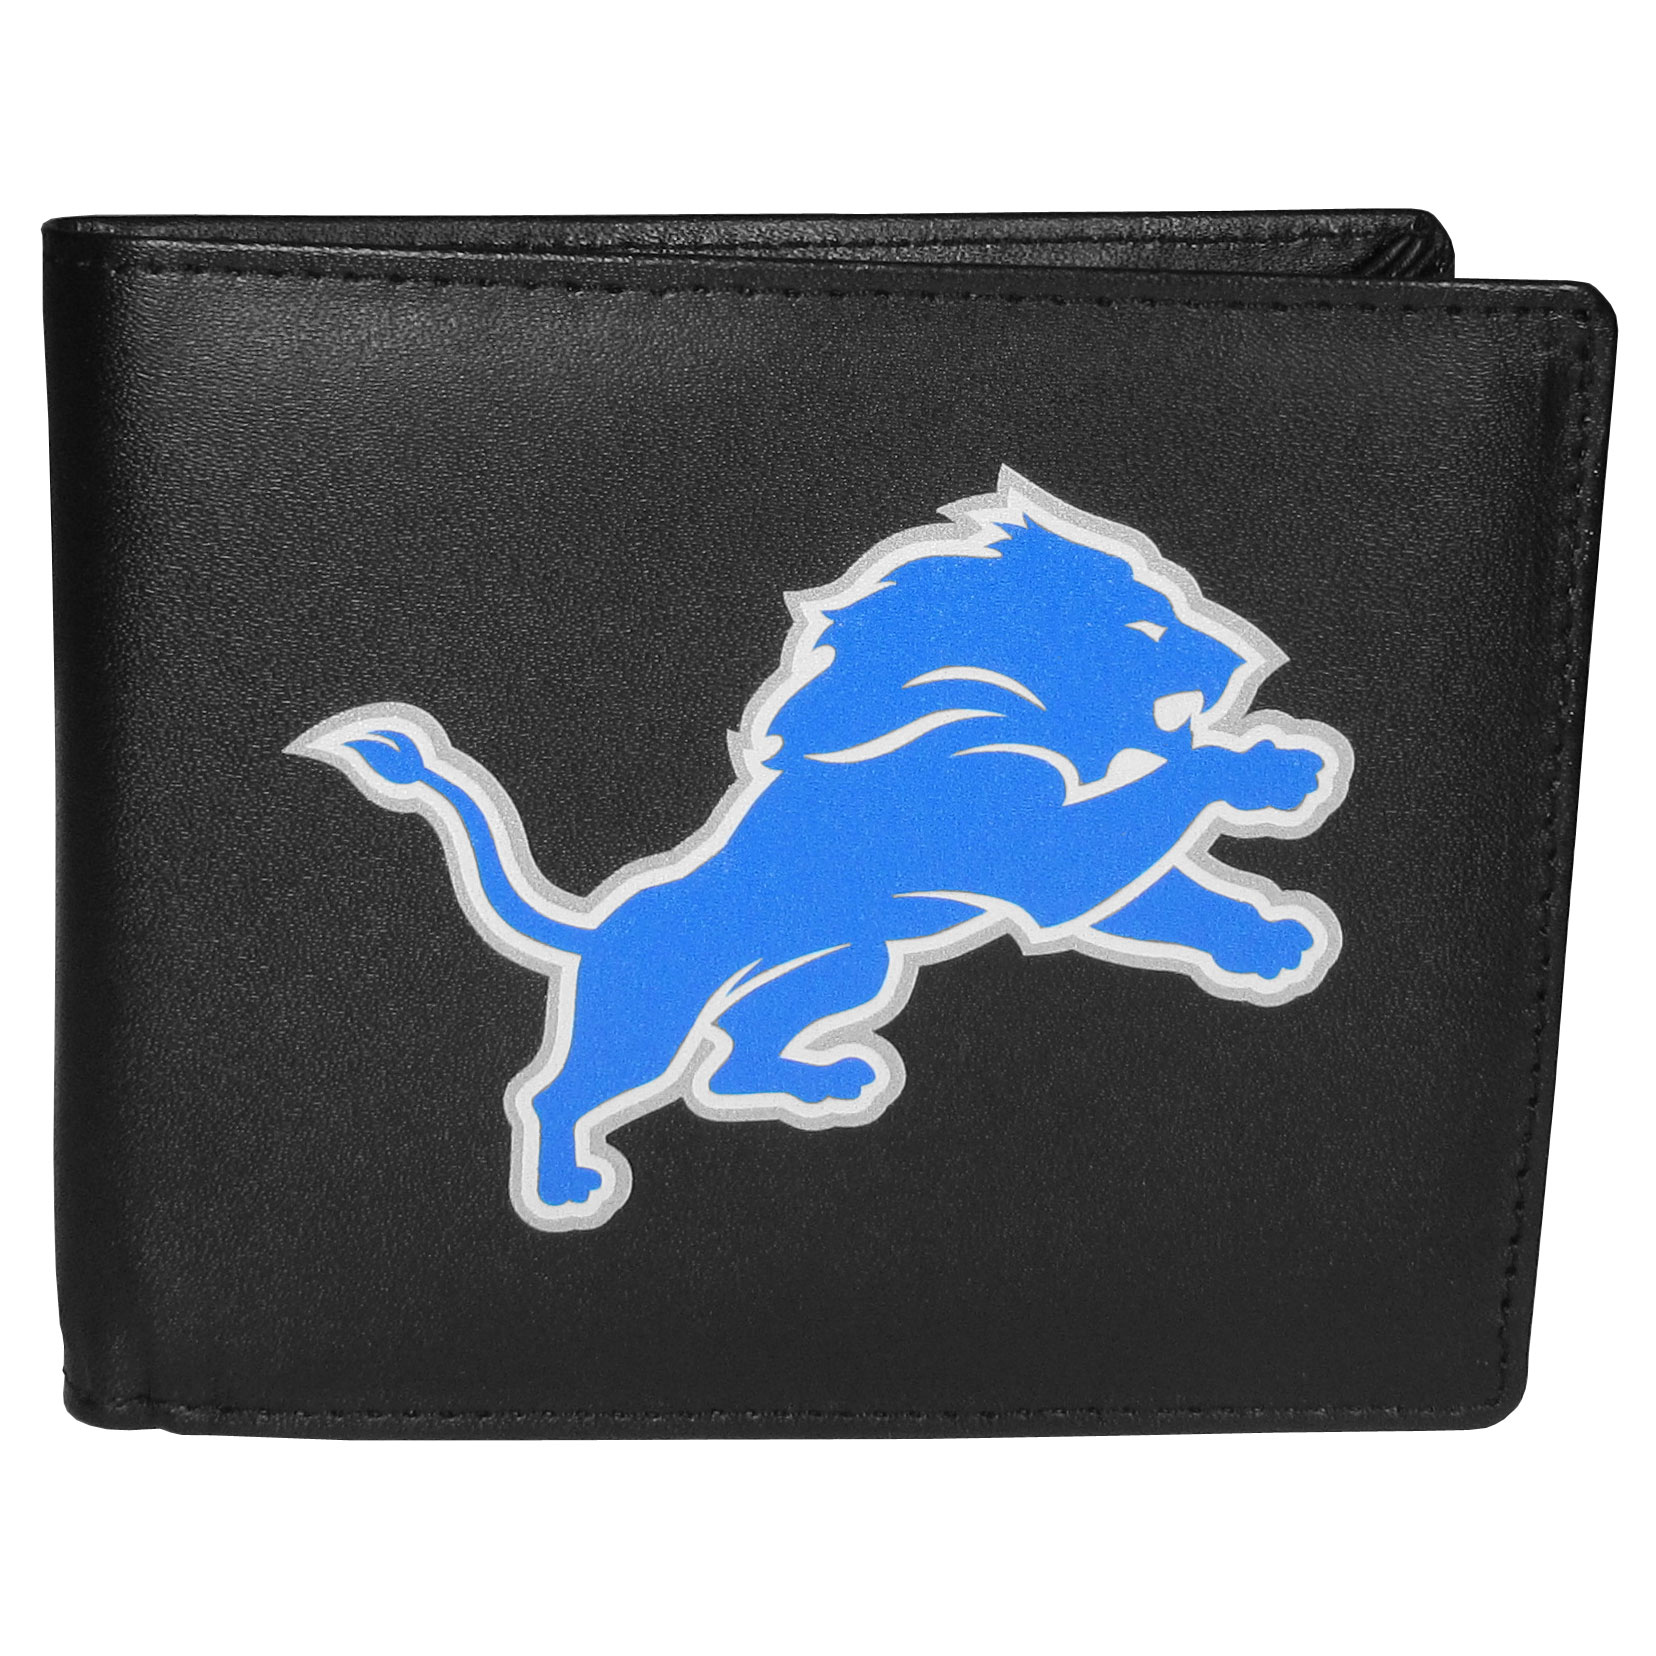 Detroit Lions Bi-fold Wallet Large Logo - Sports fans do not have to sacrifice style with this classic bi-fold wallet that sports the Detroit Lions extra large logo. This men's fashion accessory has a leather grain look and expert craftmanship for a quality wallet at a great price. The wallet features inner credit card slots, windowed ID slot and a large billfold pocket. The front of the wallet features a printed team logo.